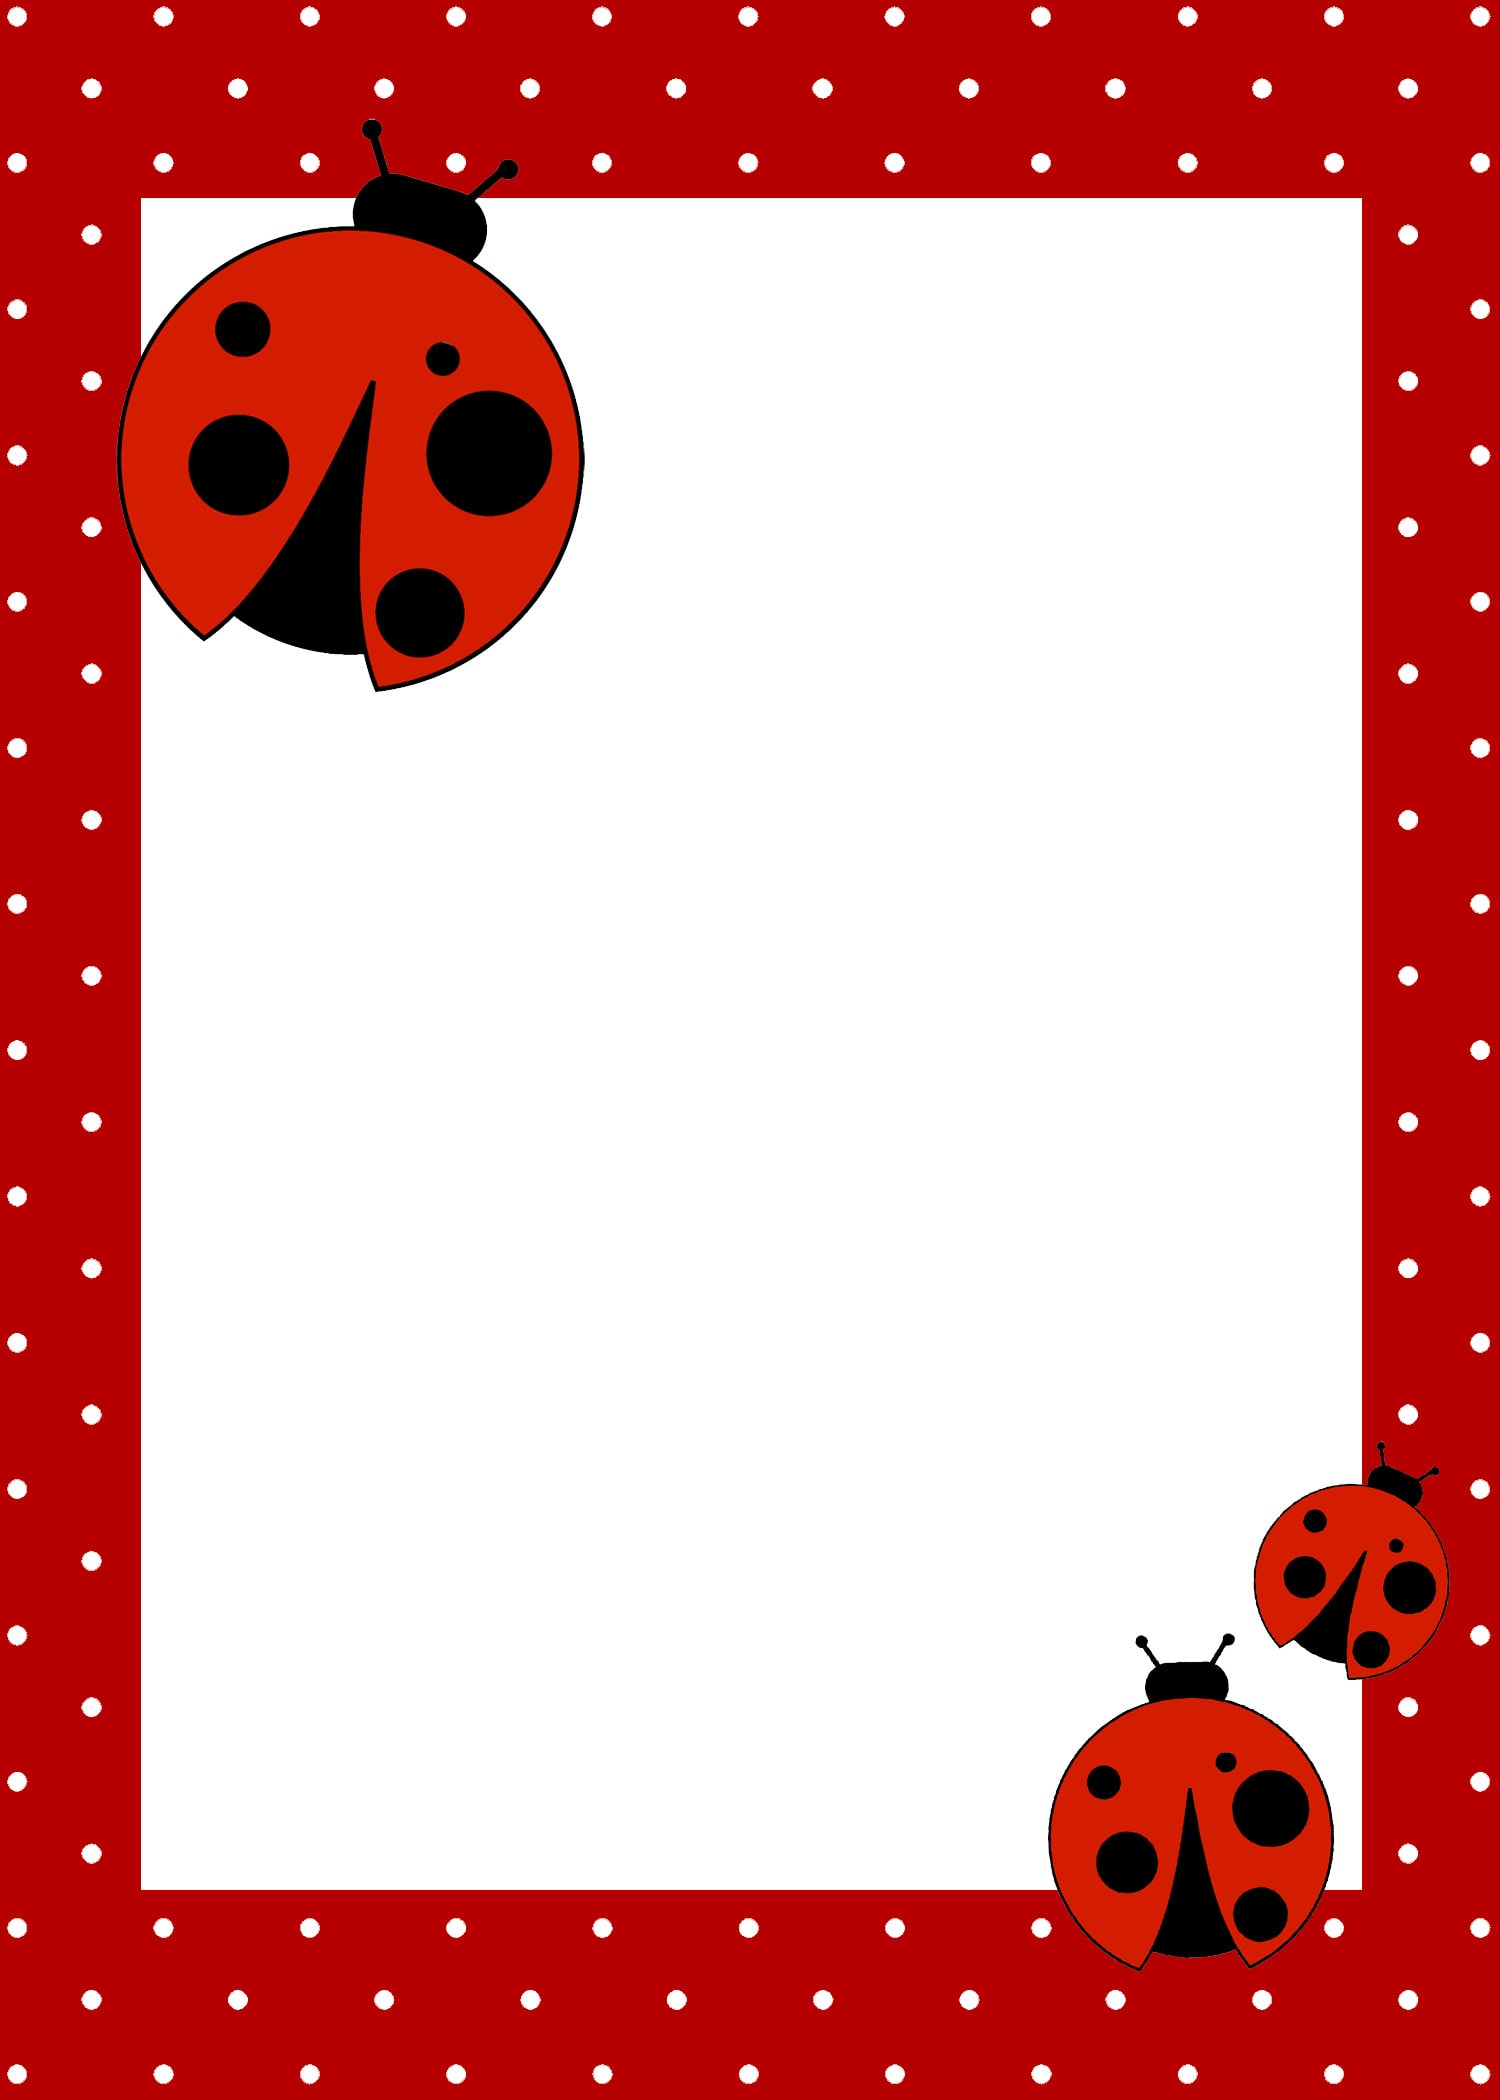 ladybug themed birthday party printables how to nest com wp content uploads 2012 03 ladybug birthday invitation jpg